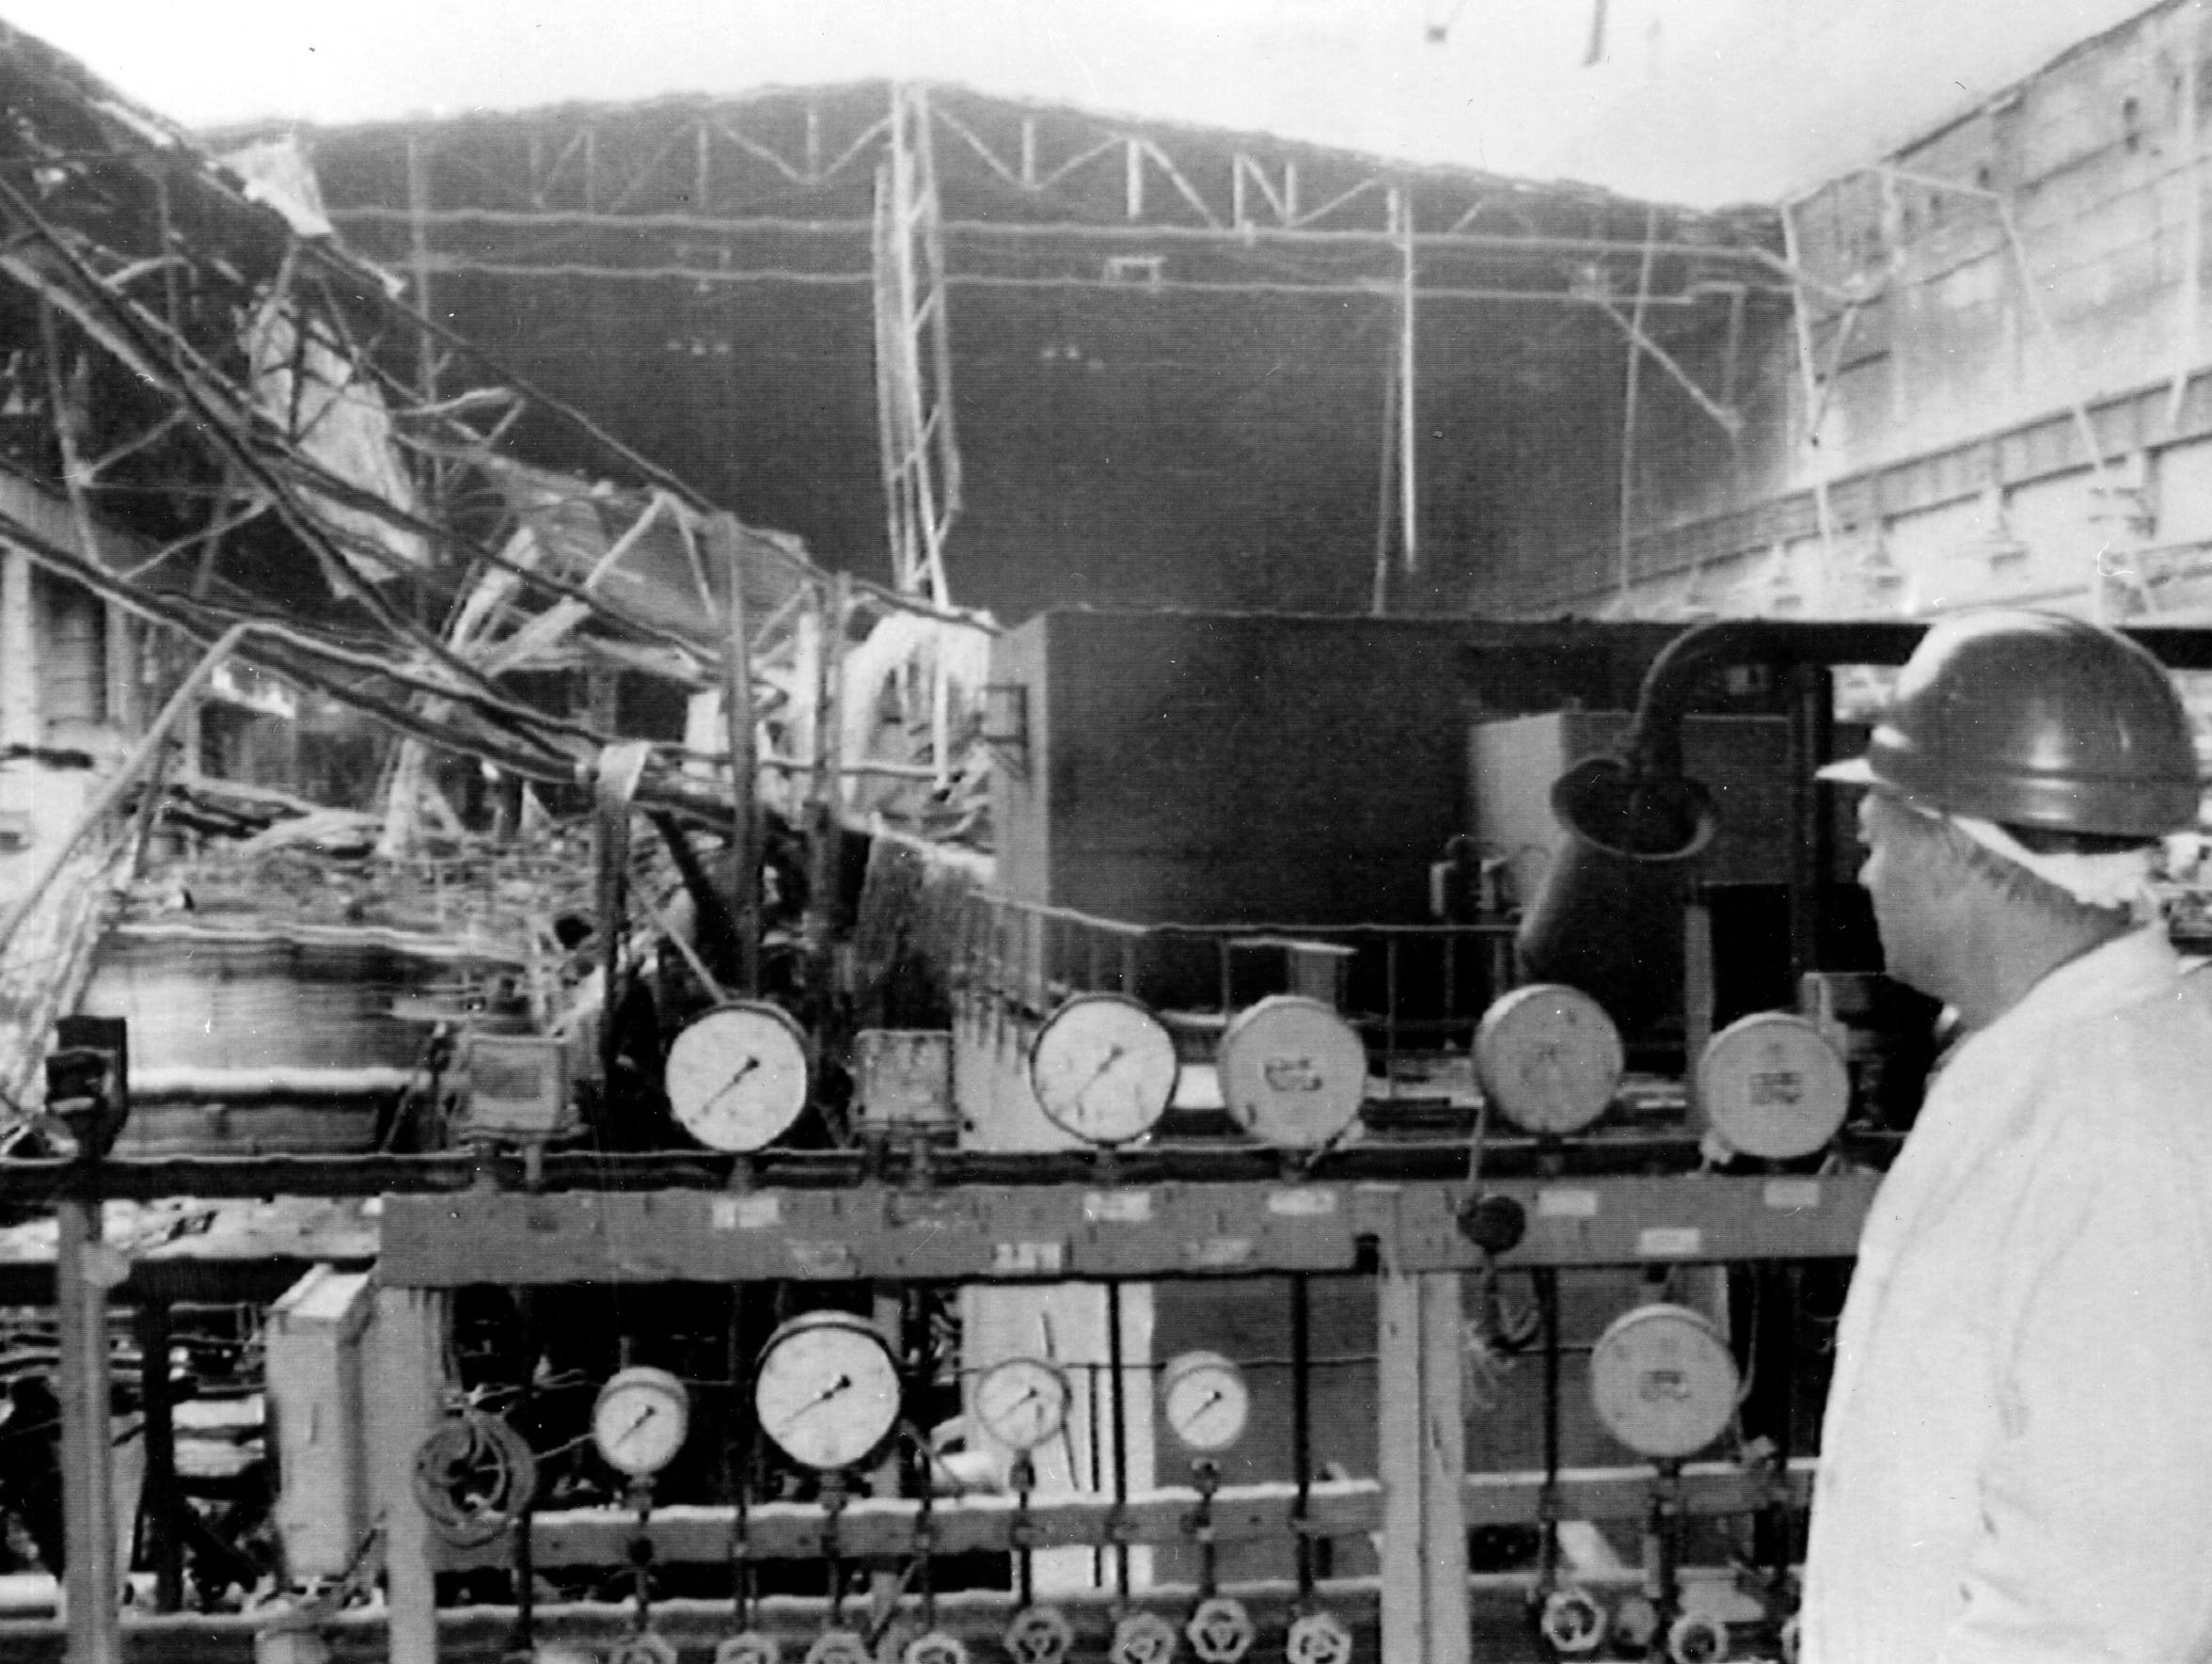 An engineer inspects the damage of the machine room